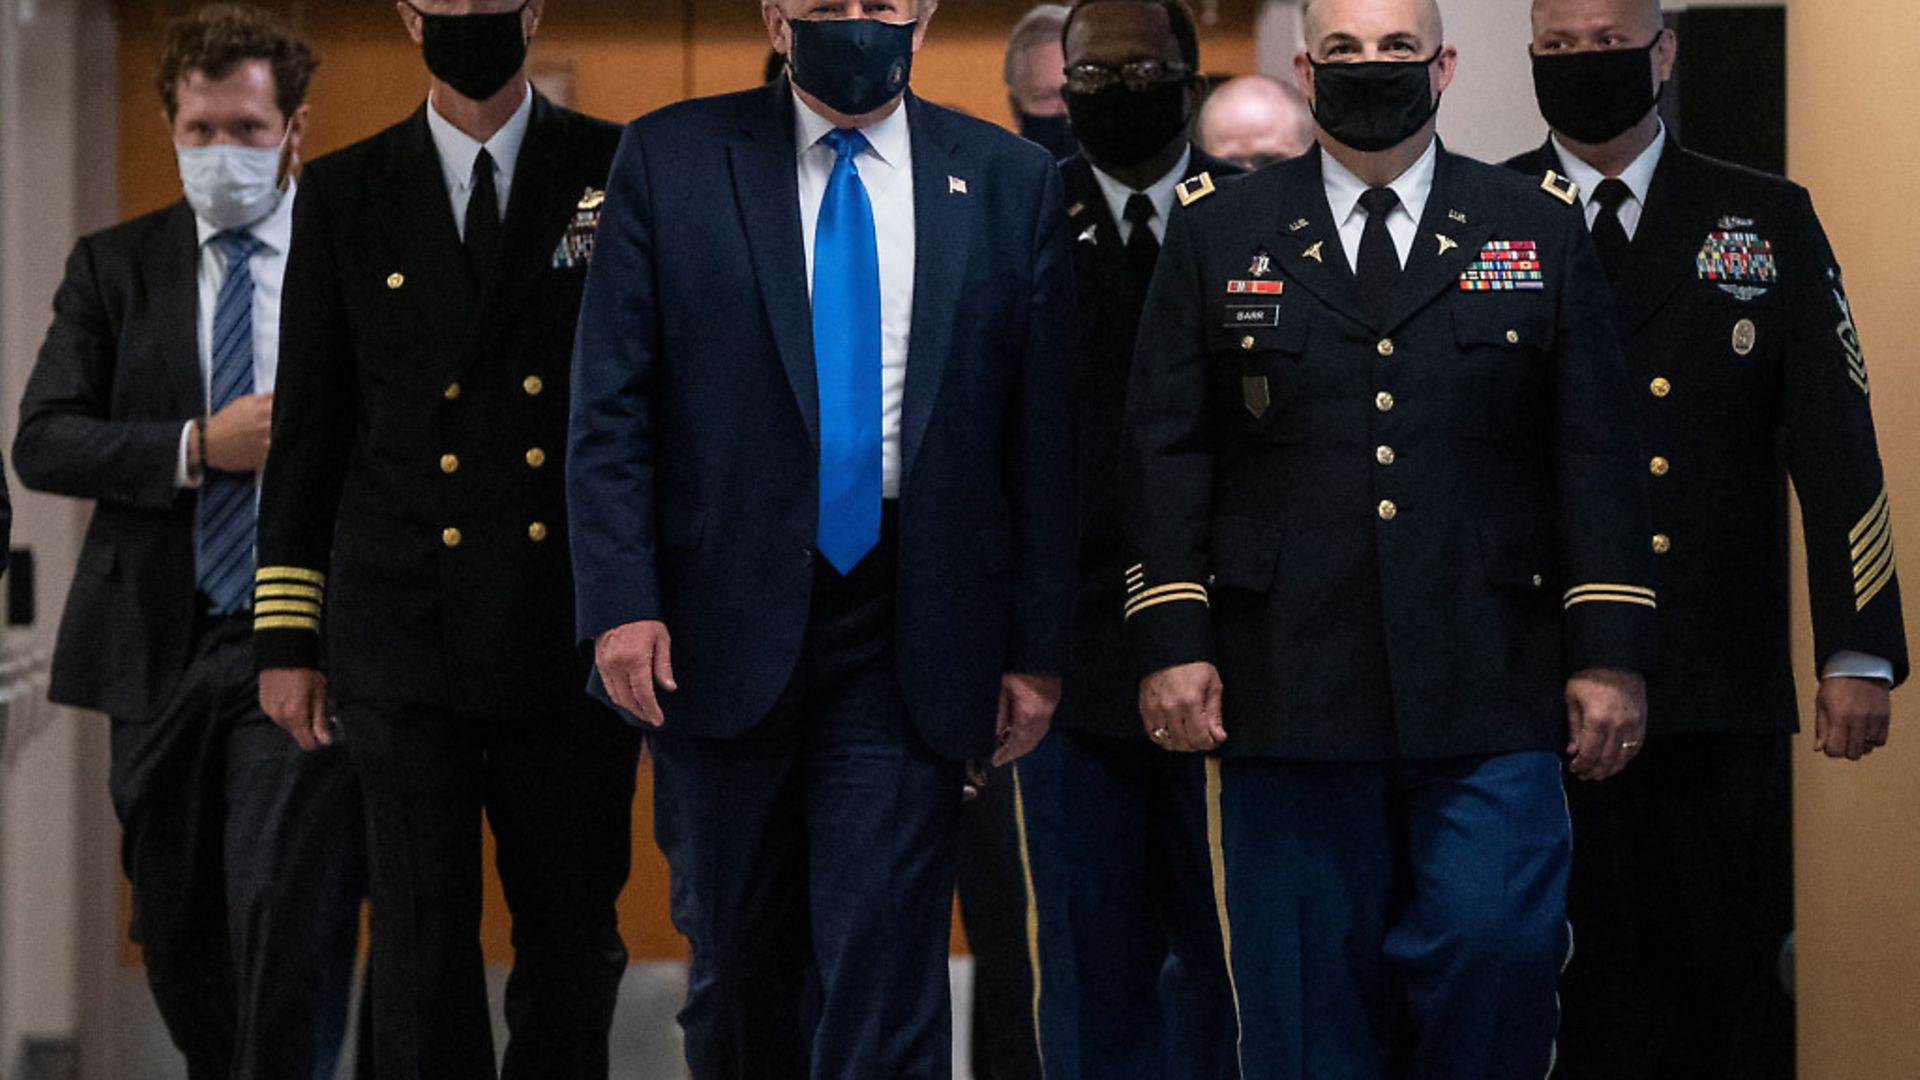 US President Donald Trump wears a mask as he visits Walter Reed National Military Medical Center in  Maryland. Photo: ALEX EDELMAN/AFP via Getty Images - Credit: AFP via Getty Images